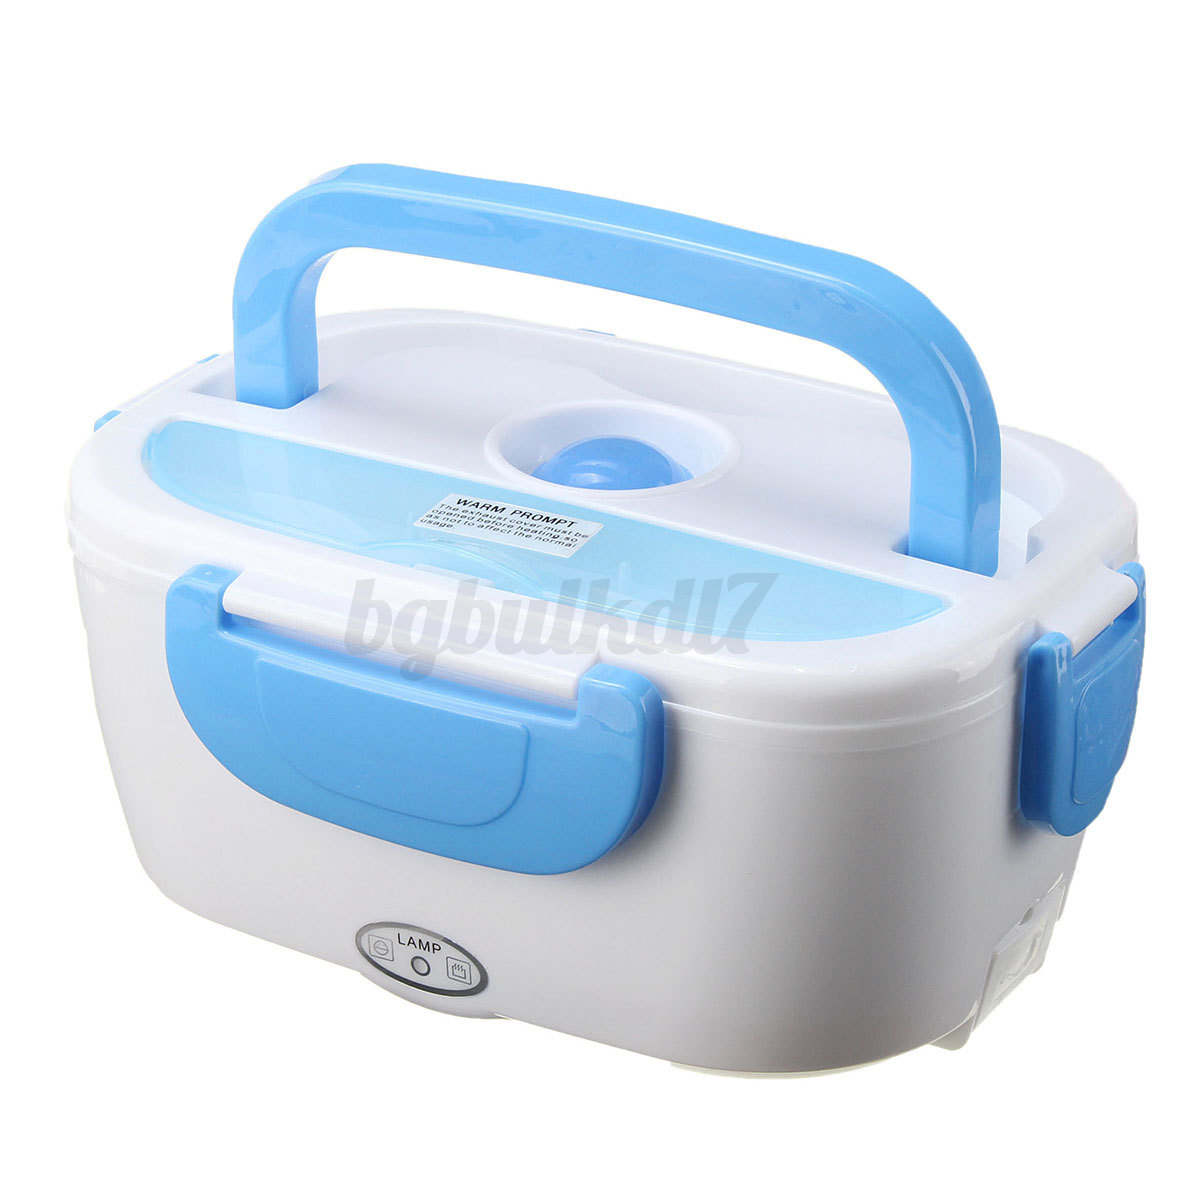 portable car plug electric heating heated lunch box bento food warmer container ebay. Black Bedroom Furniture Sets. Home Design Ideas